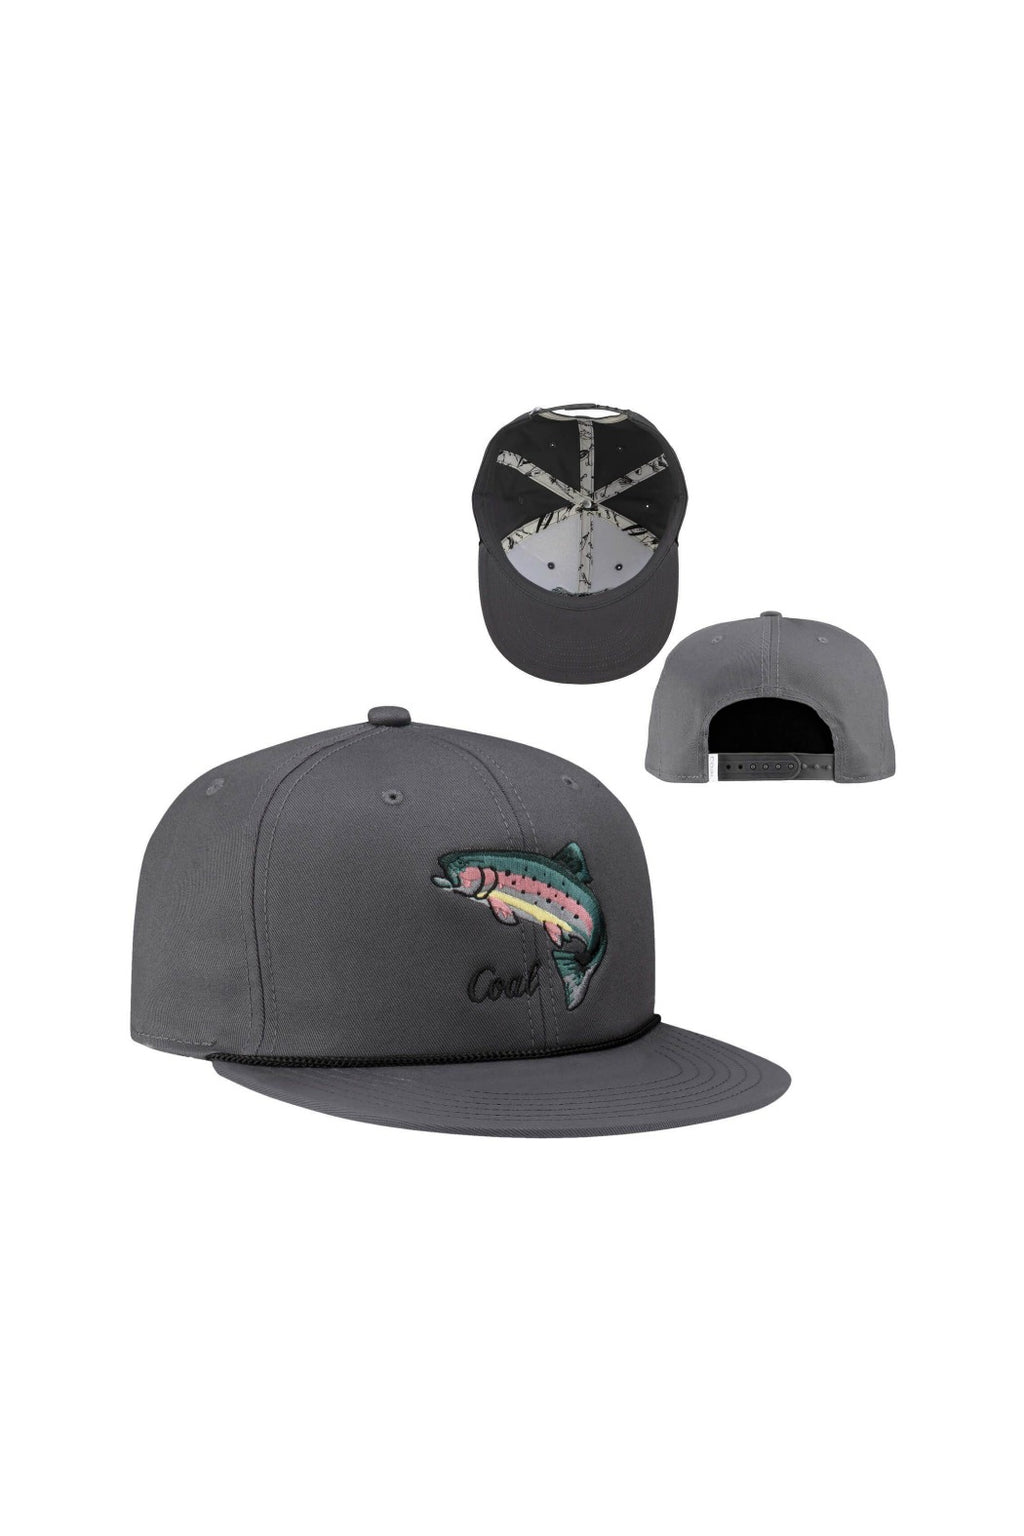 Coal The Wilds Cap - Charcoal